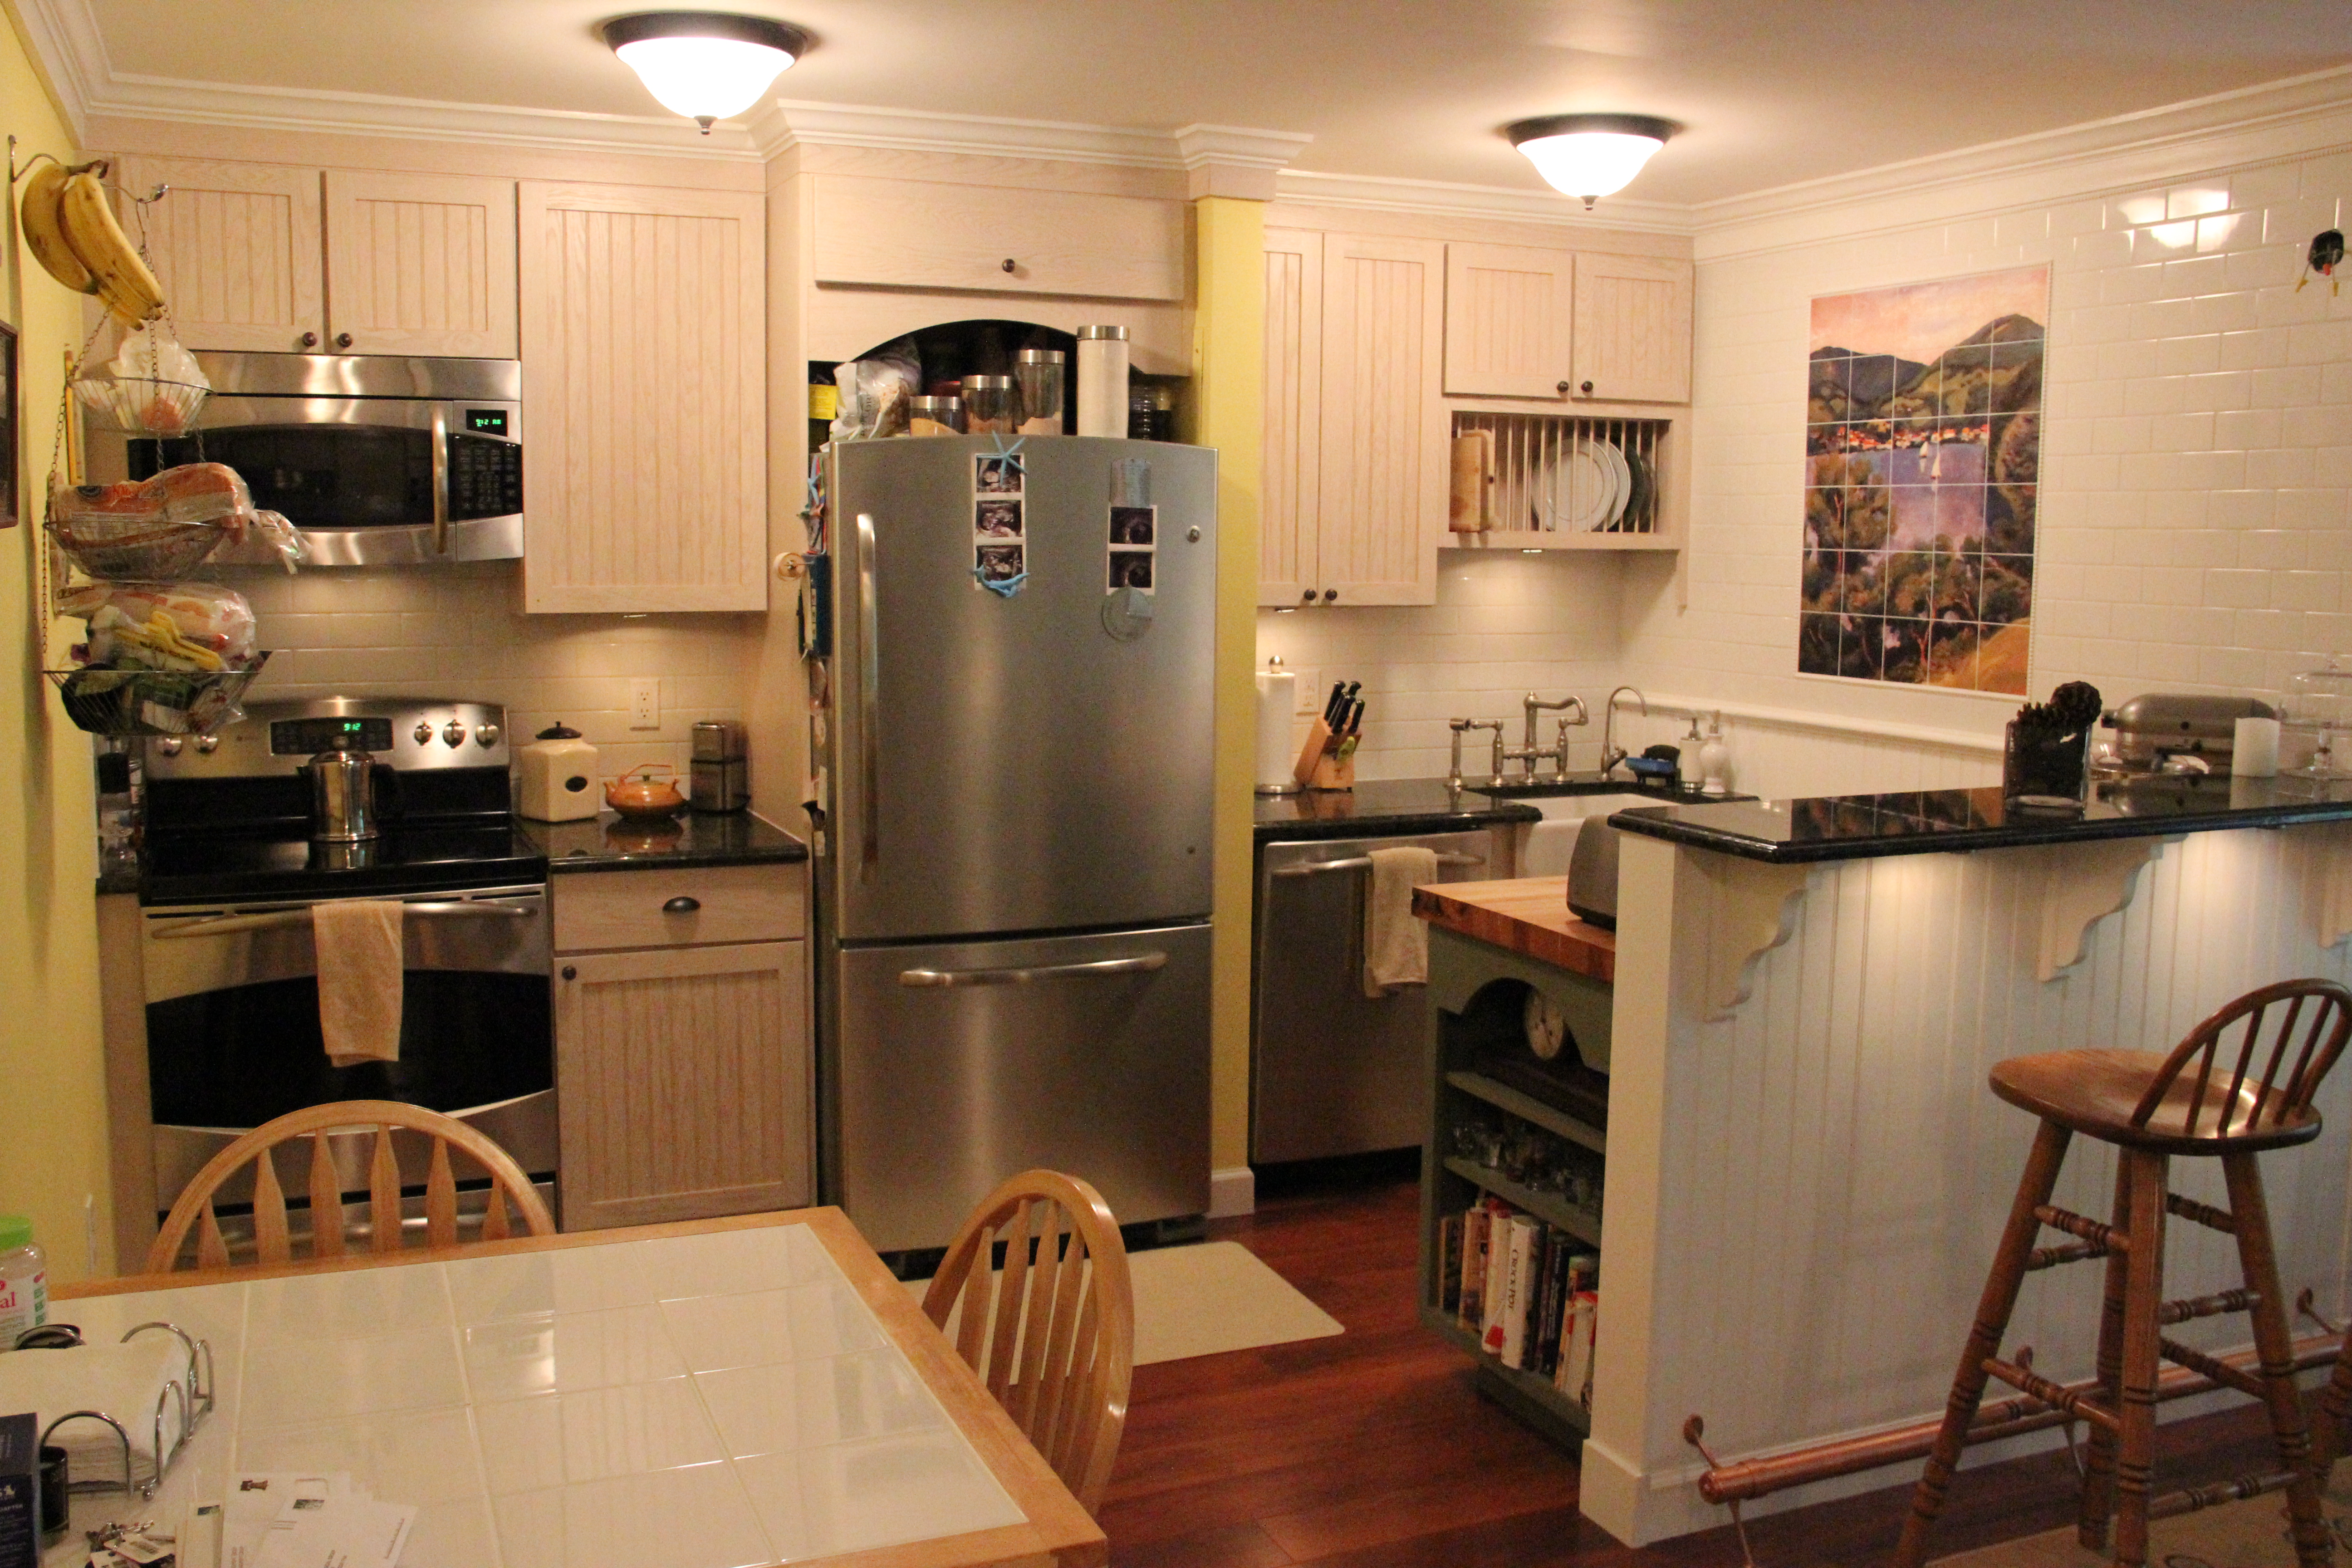 Kitchen remodeling project in Hastings, New York